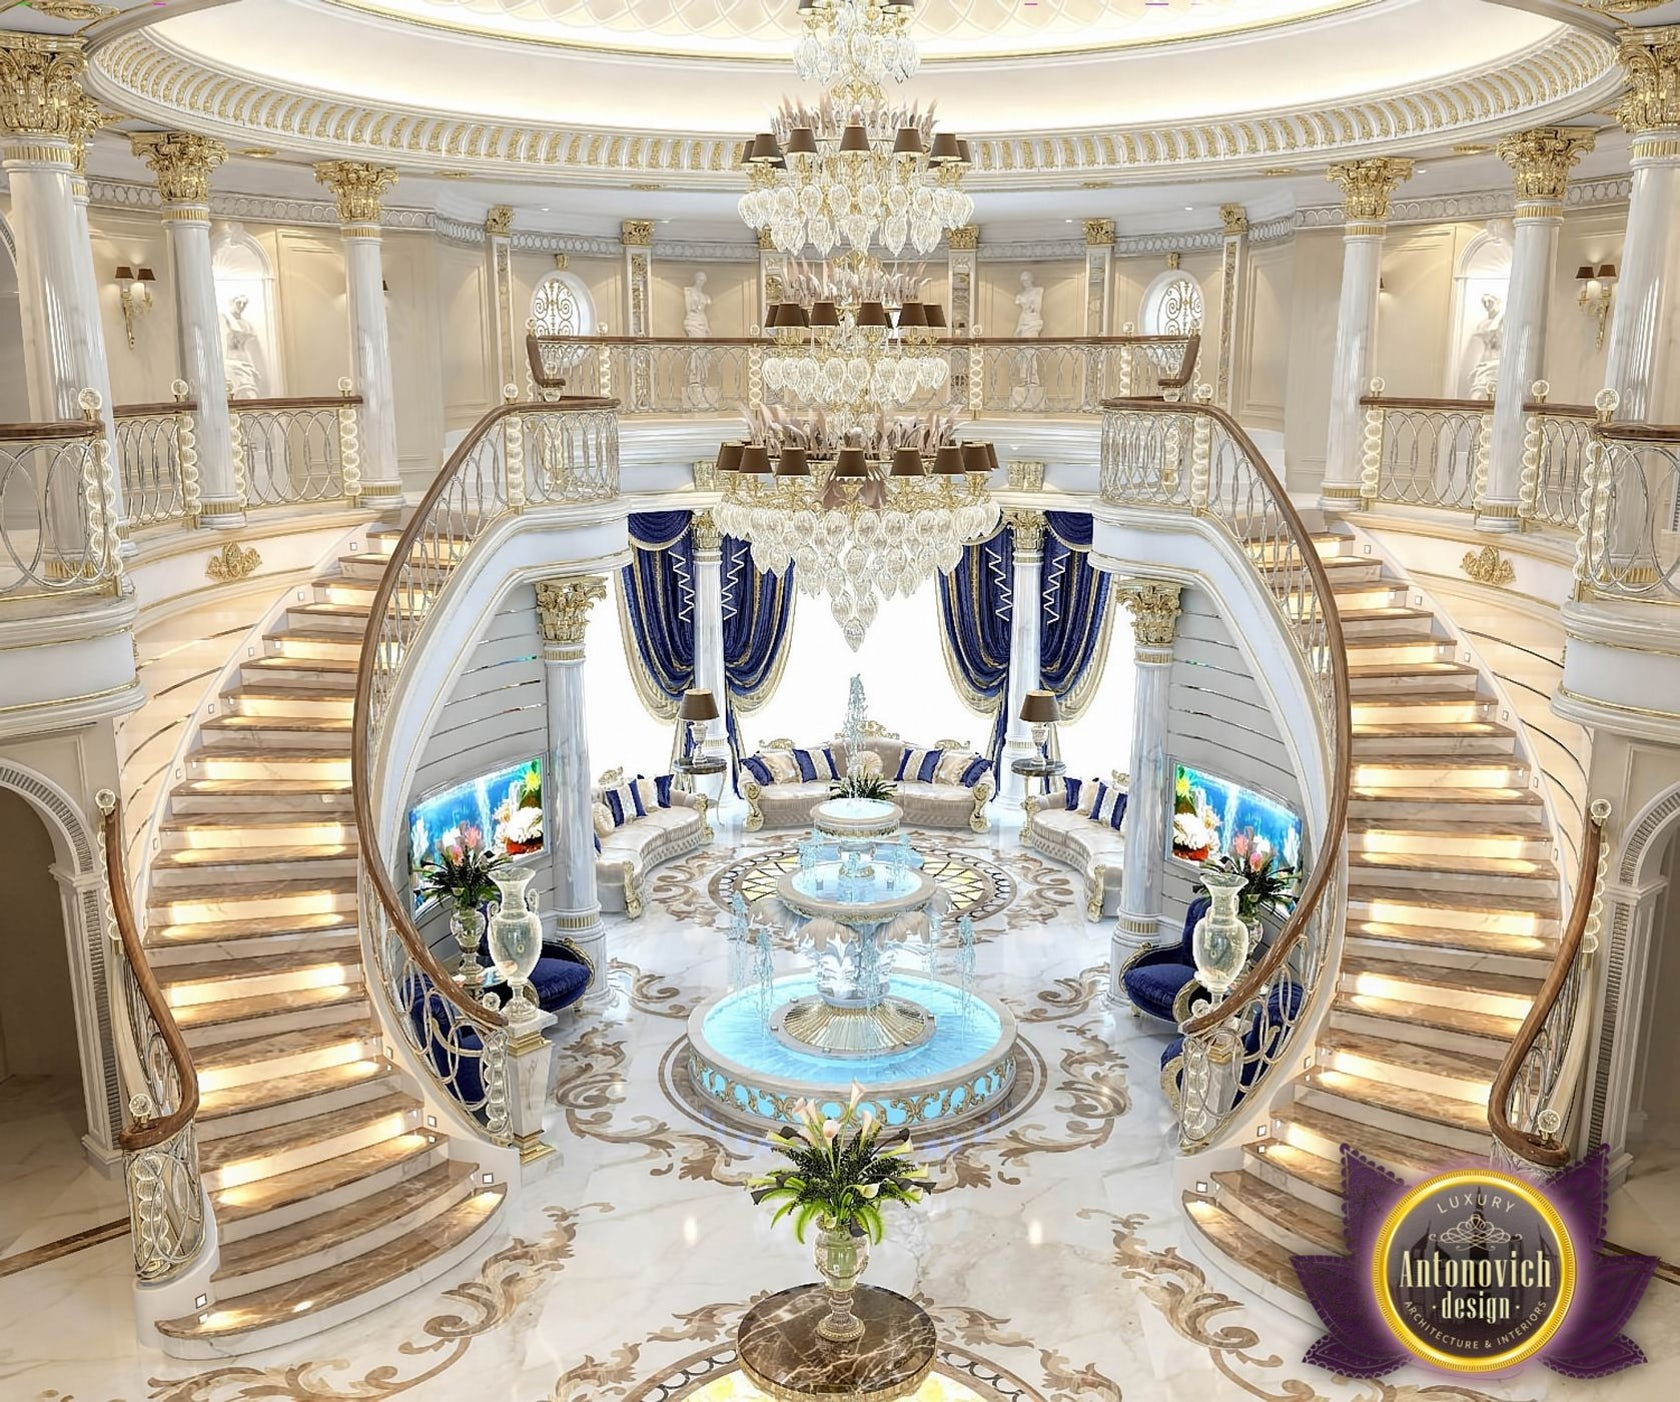 Katrina Antonovich Luxury Interior Design: The Best Interior Design In Saudi Arabia By Katrina